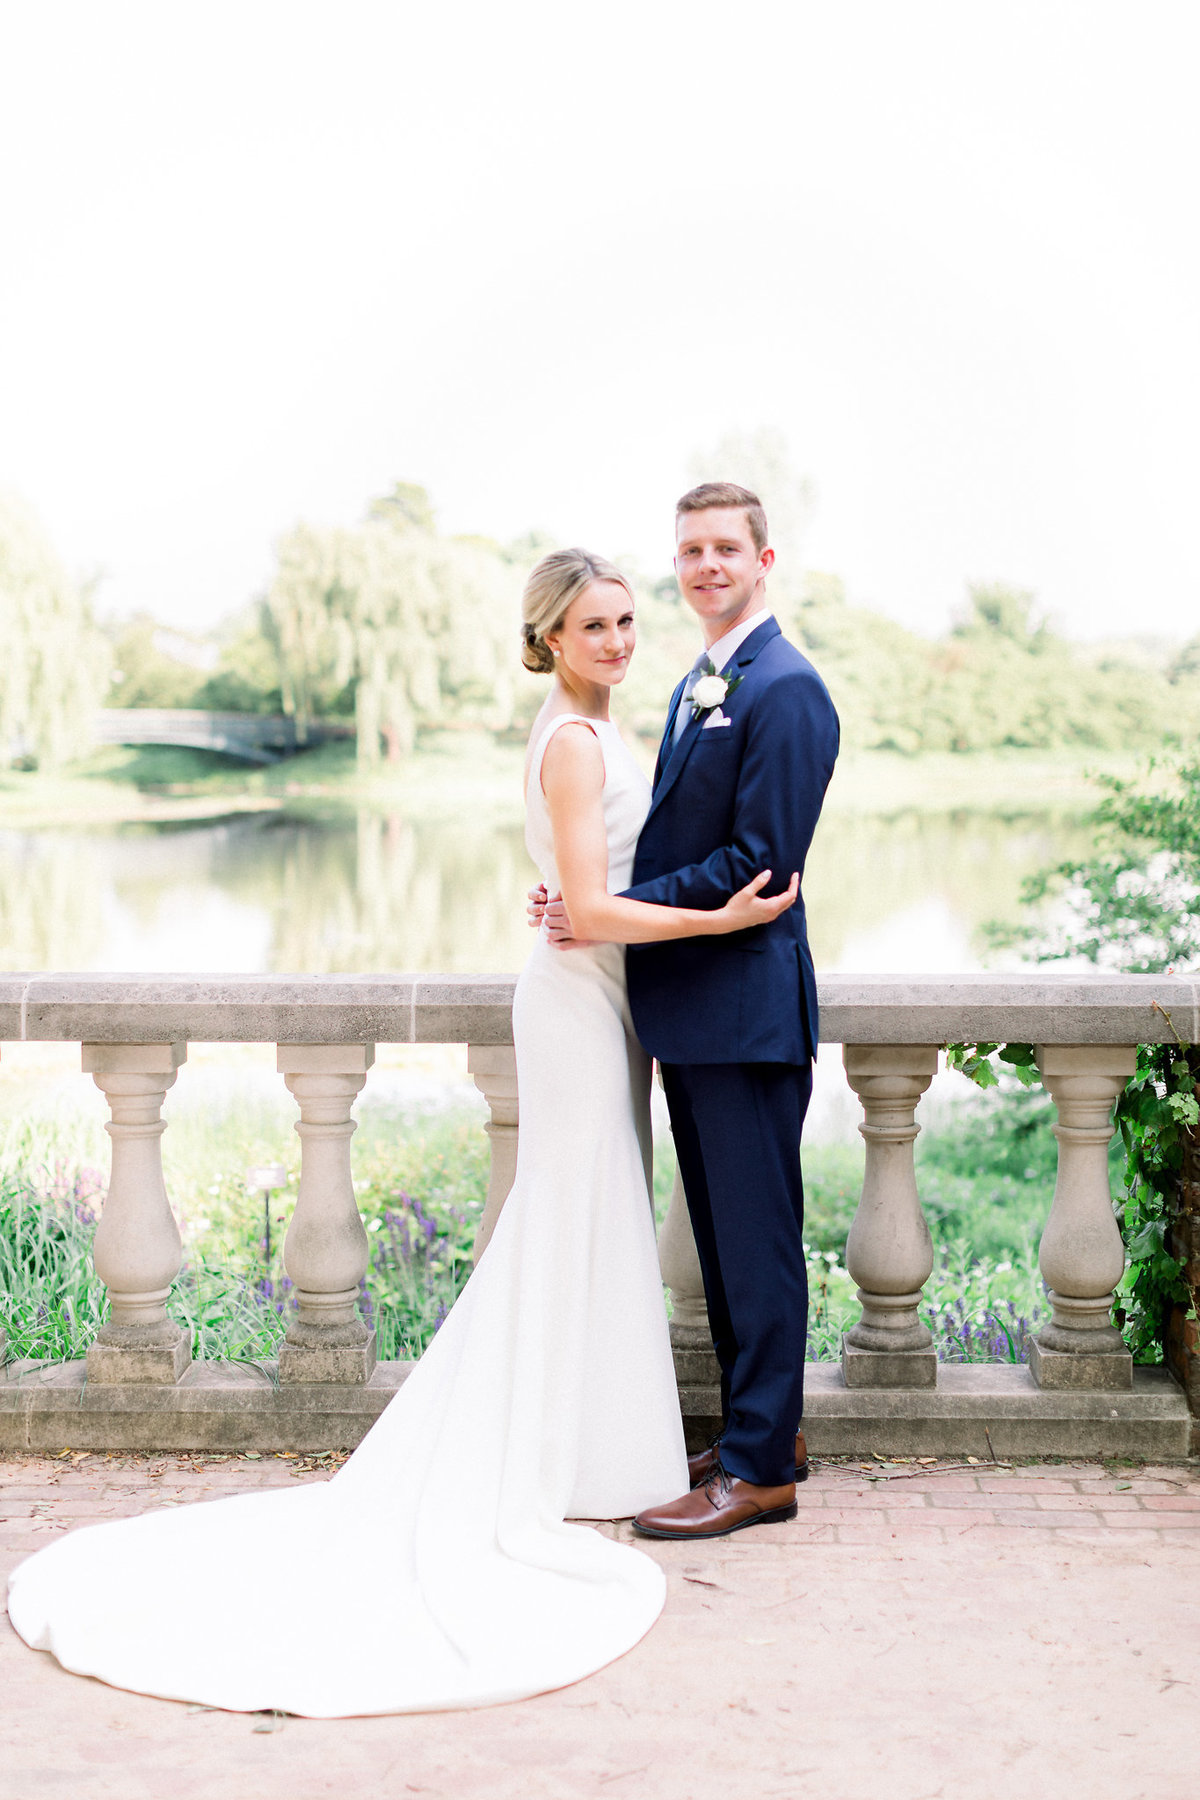 TiffaneyChildsPhotography-ChicagoWeddingPhotographer-Micheala+Tommy-ChicagoBotanicGardenWedding-BridalPortraits-41